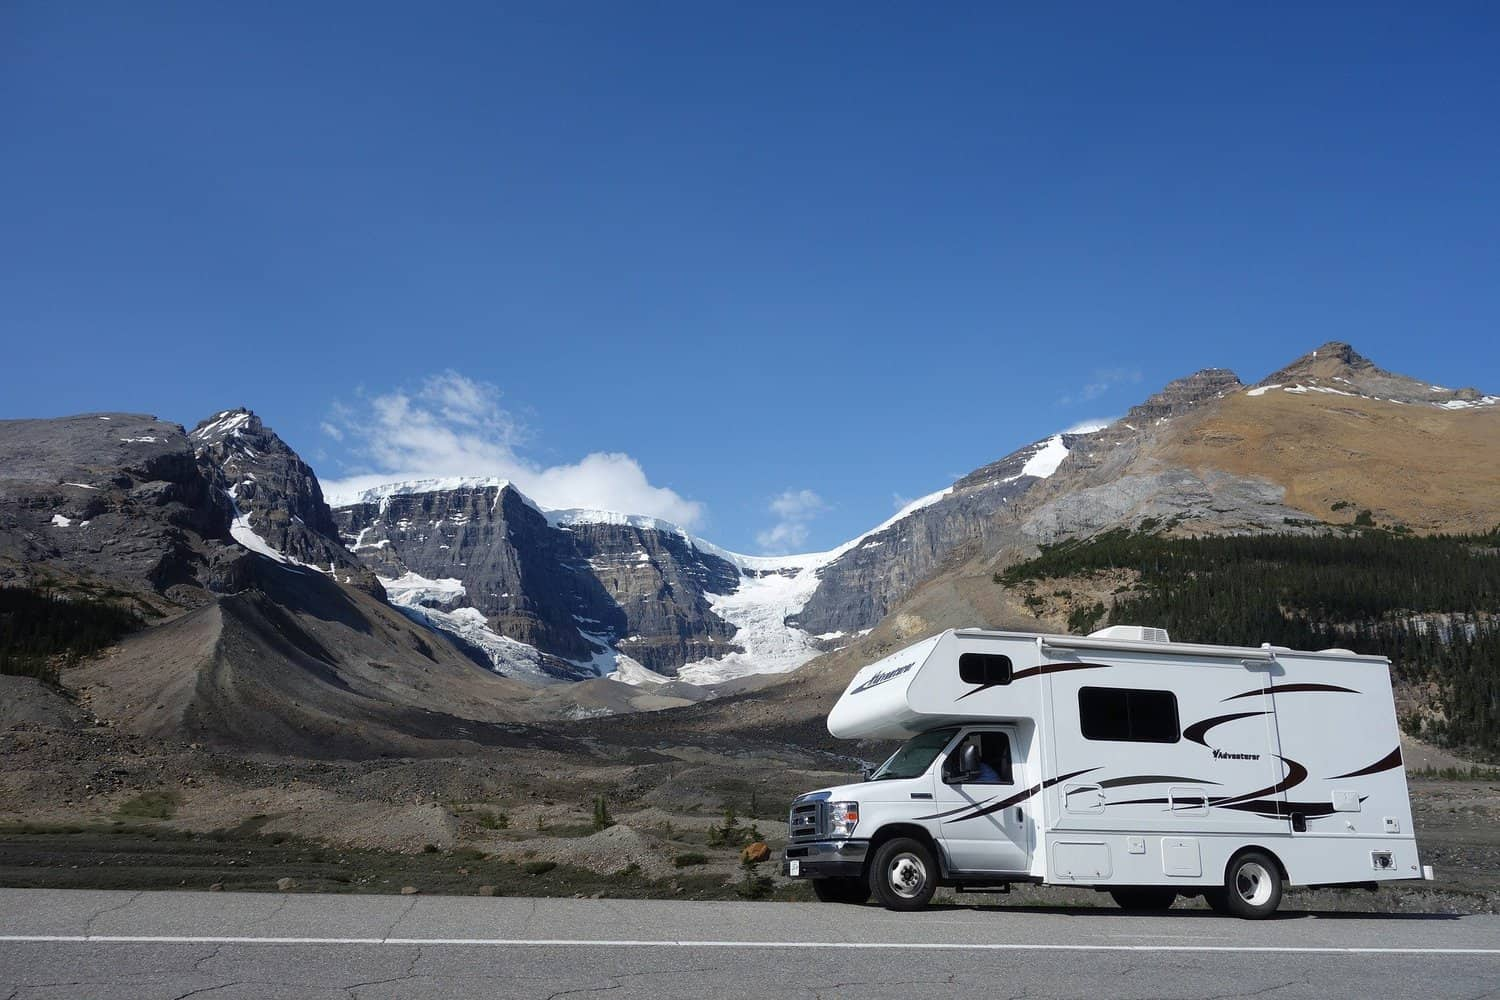 How To Insulate A Travel Trailer For Winter Use